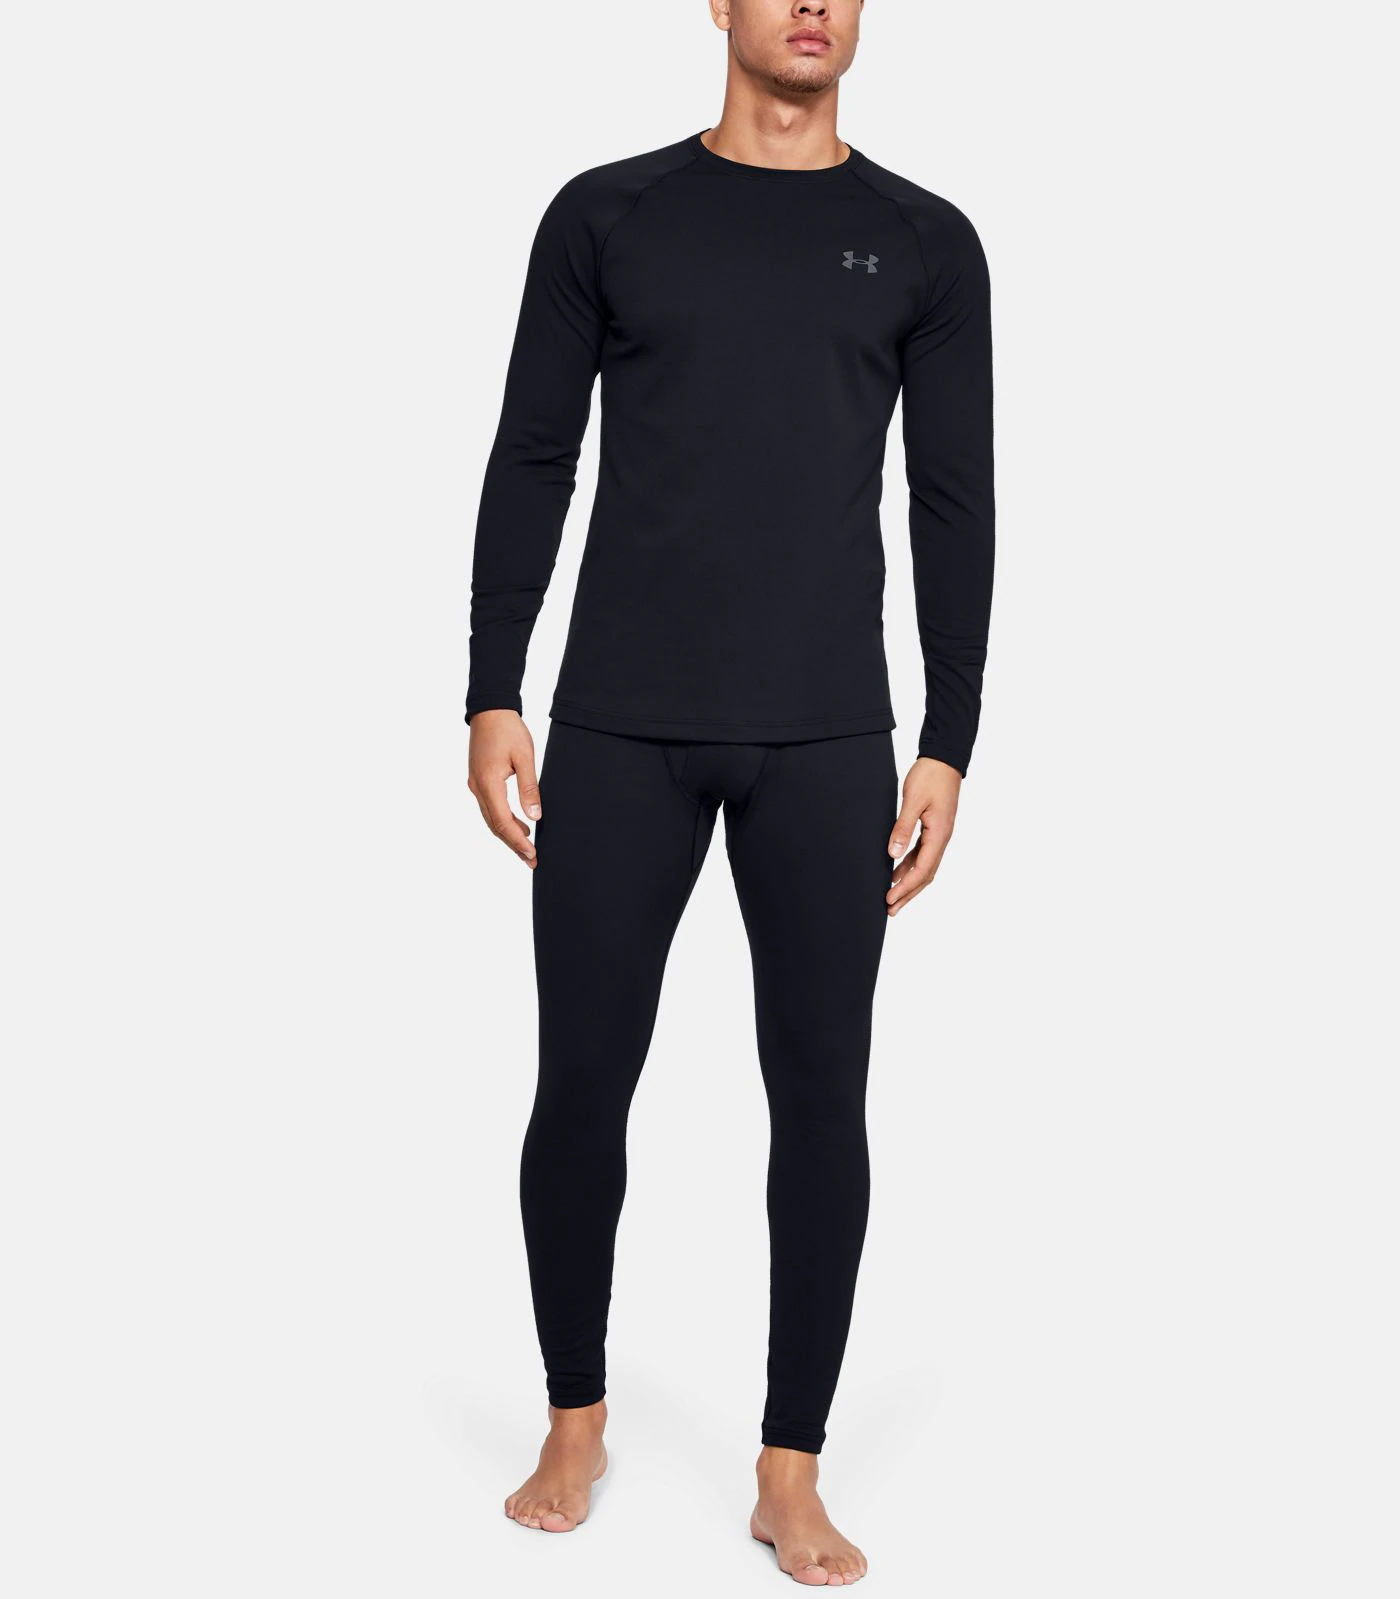 MENS_BASE-LAYERS-2_LS_UAR1343244001_03